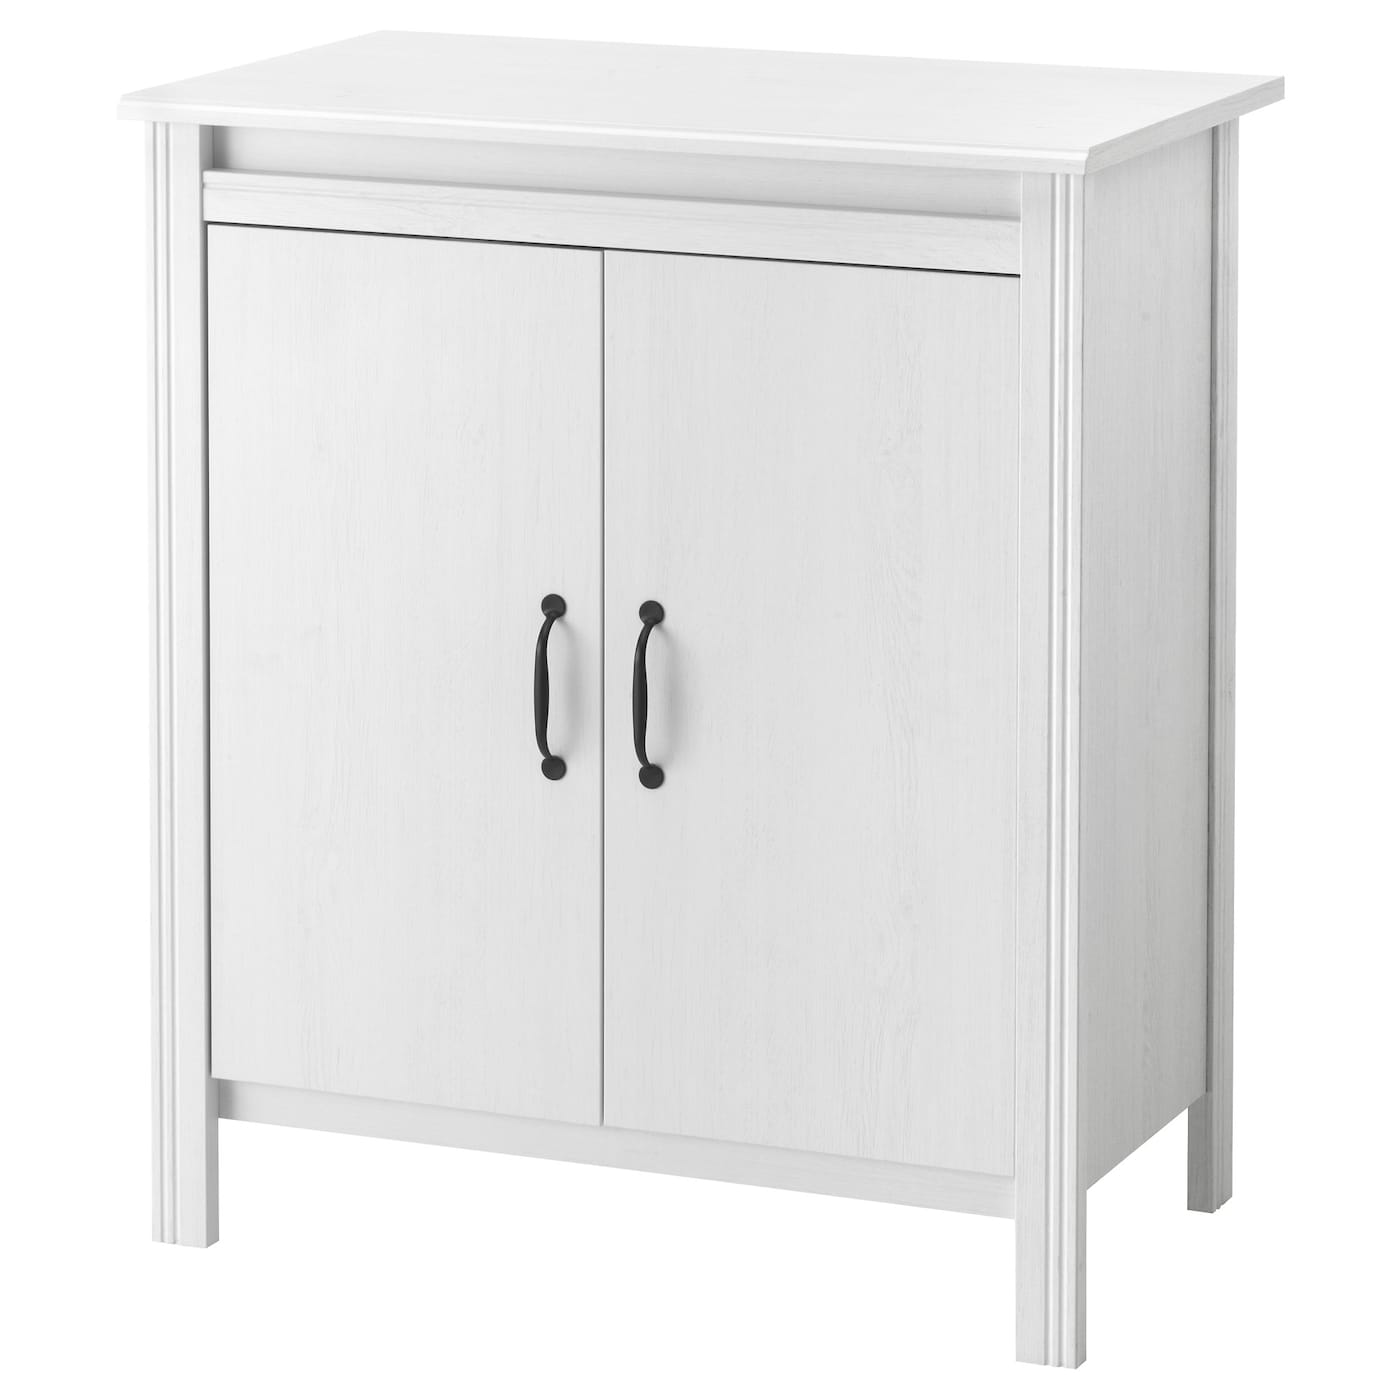 IKEA BRUSALI cabinet with doors Adjustable shelves, so you can customise your storage as needed.